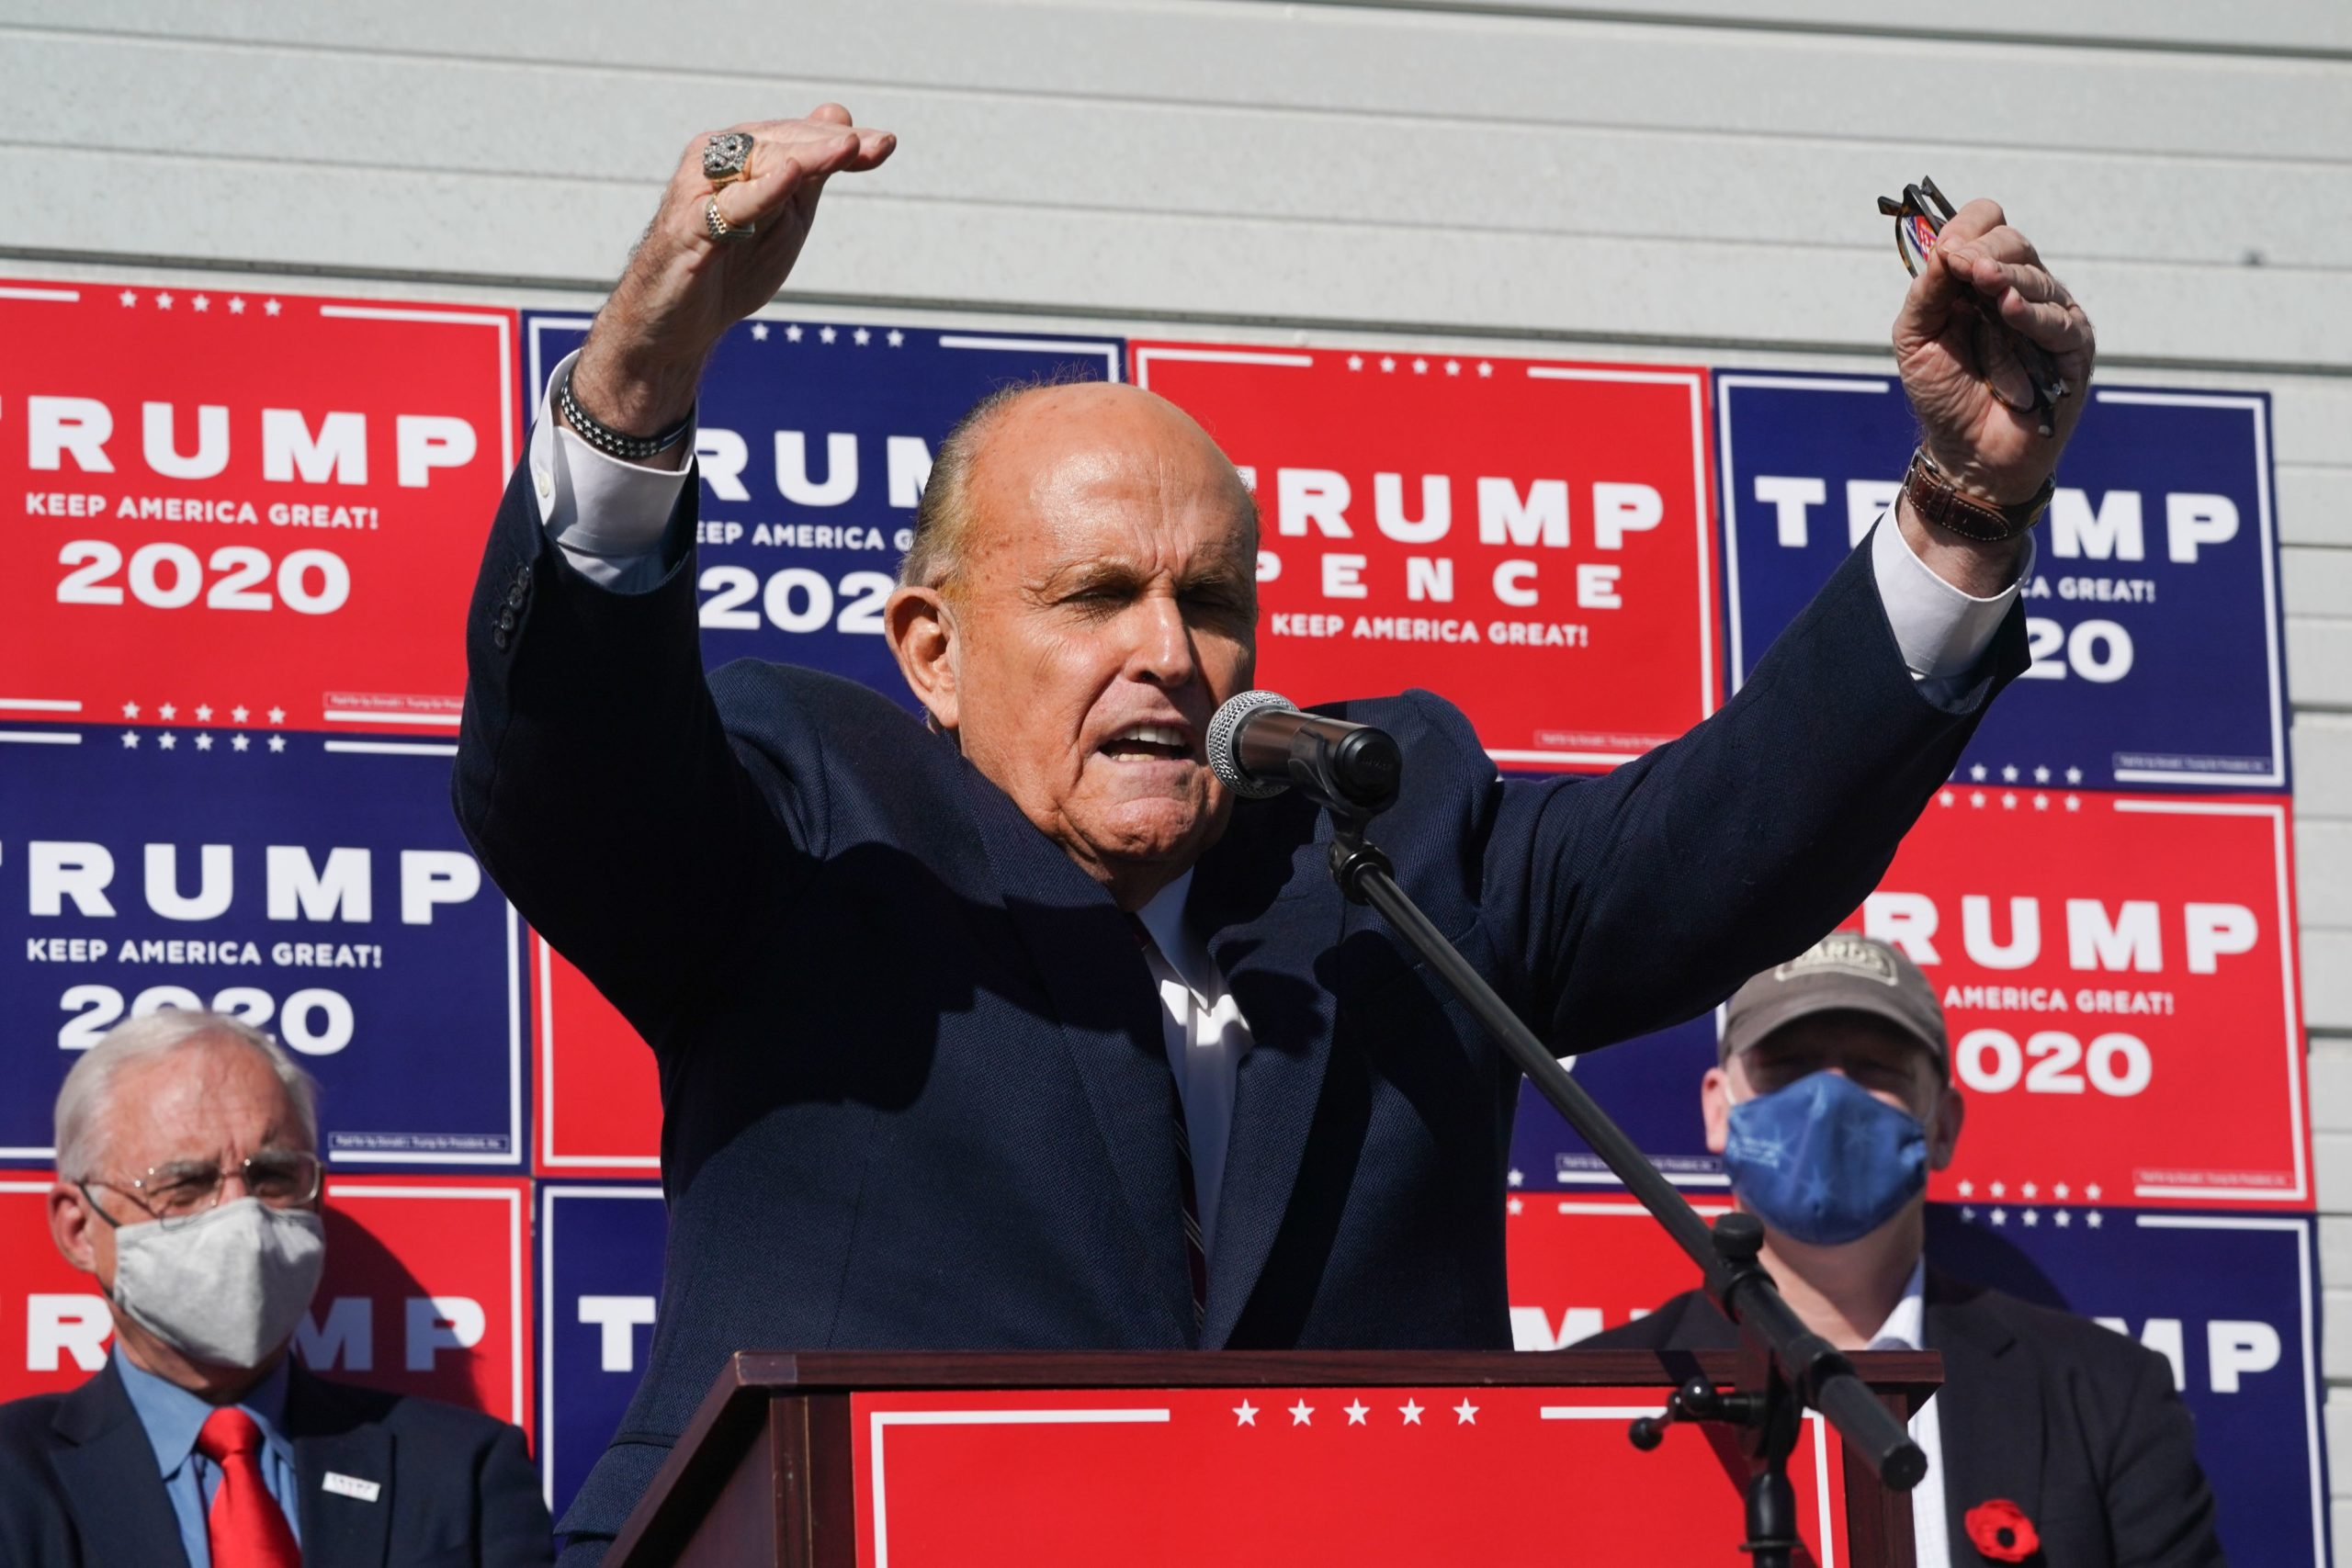 Attorney for the President, Rudy Giuliani, speaks at a news conference in the parking lot of a landscaping company on November 7, 2020 in Philadelphia. - Joe Biden has won the US presidency over Donald Trump, TV networks projected on November 7, 2020. CNN, NBC News and CBS News called the race in his favor, after projecting he had won the decisive state of Pennsylvania. (Photo by BRYAN R. SMITH/AFP via Getty Images)